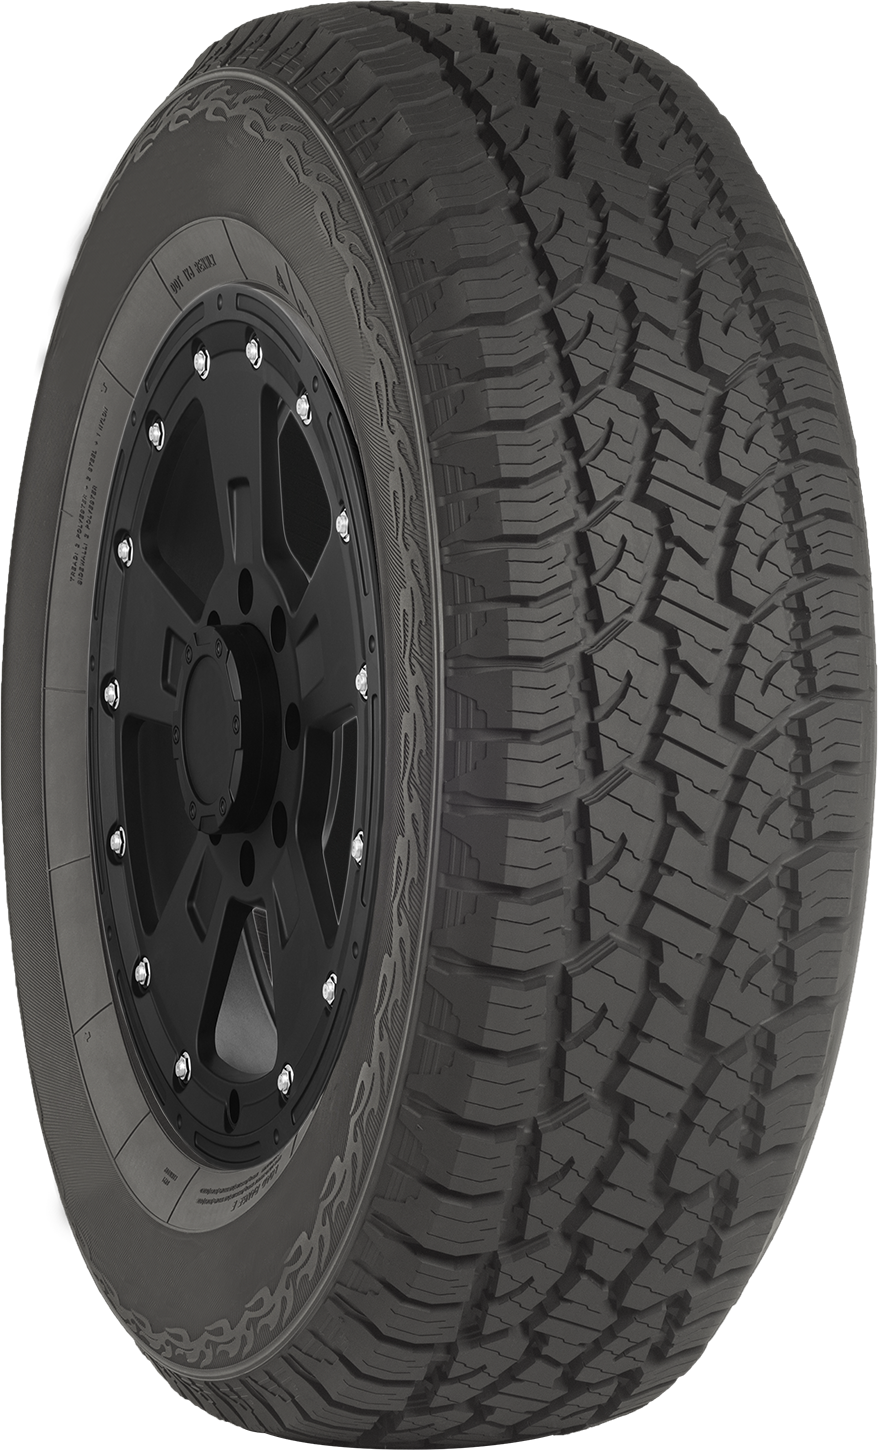 tire semi product sizes lighting tires michelin light truck detail